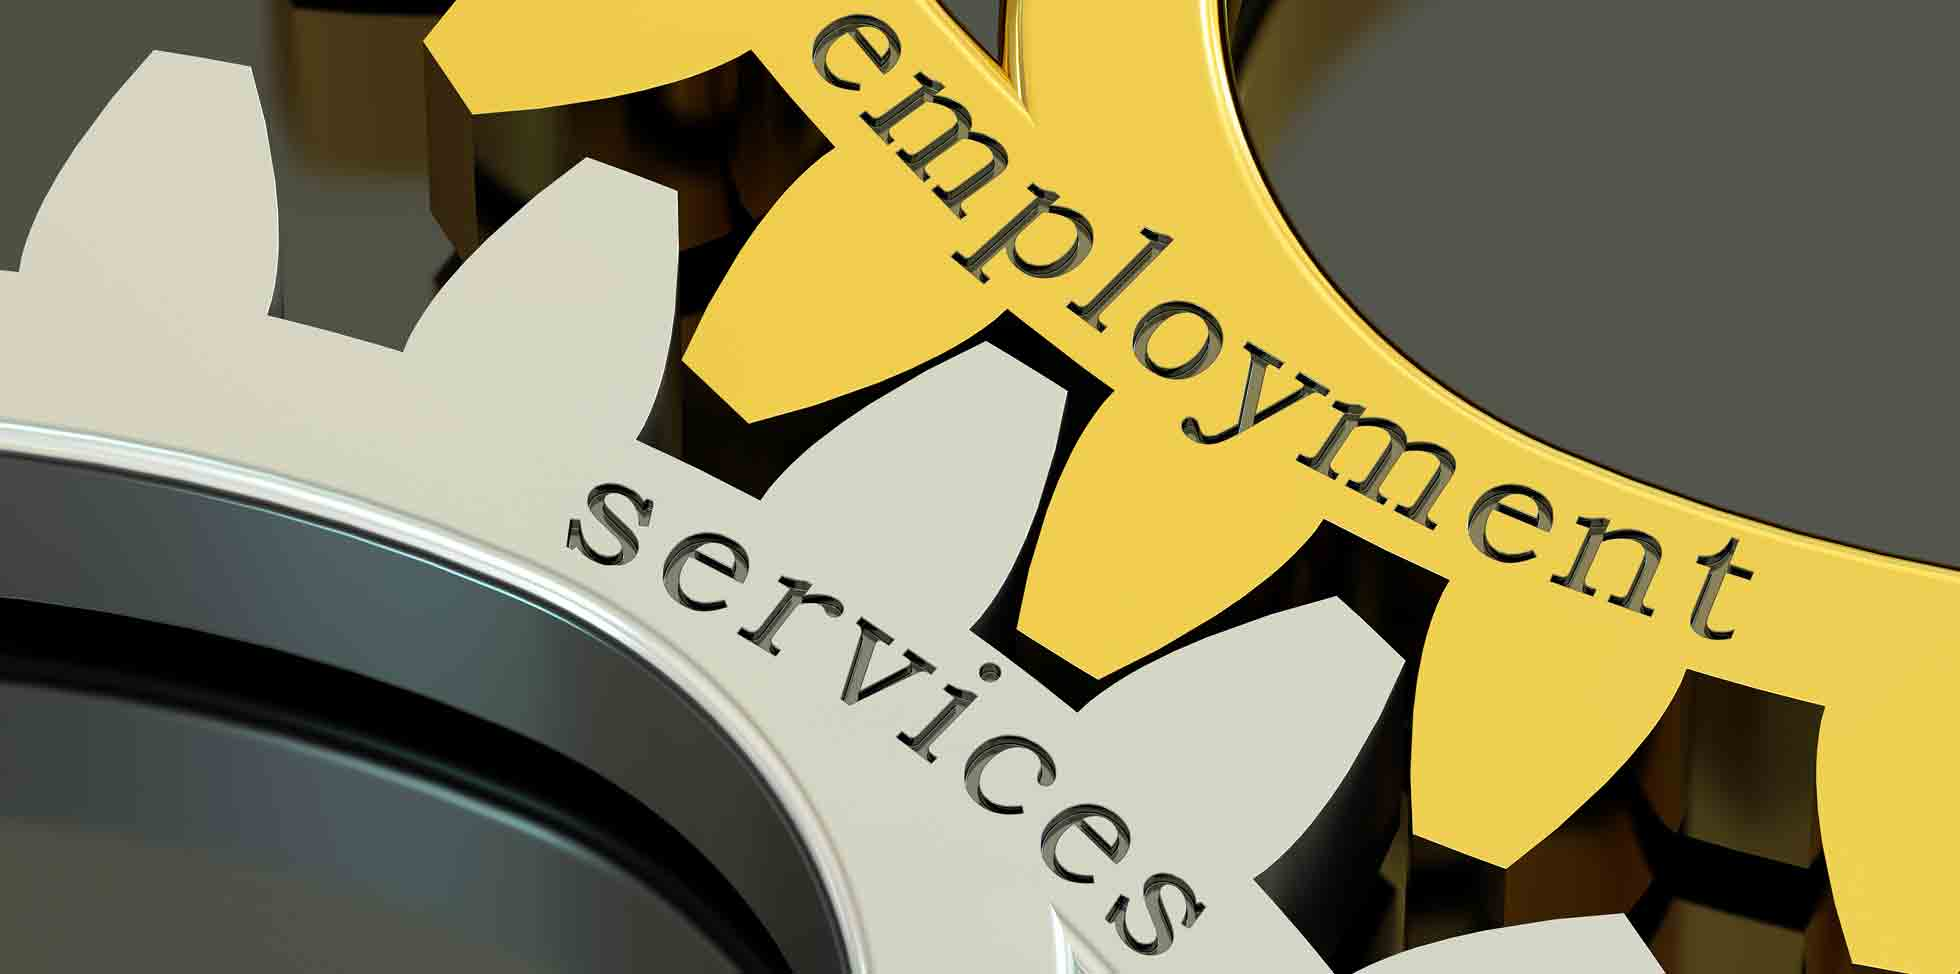 Gears that say emplyment services